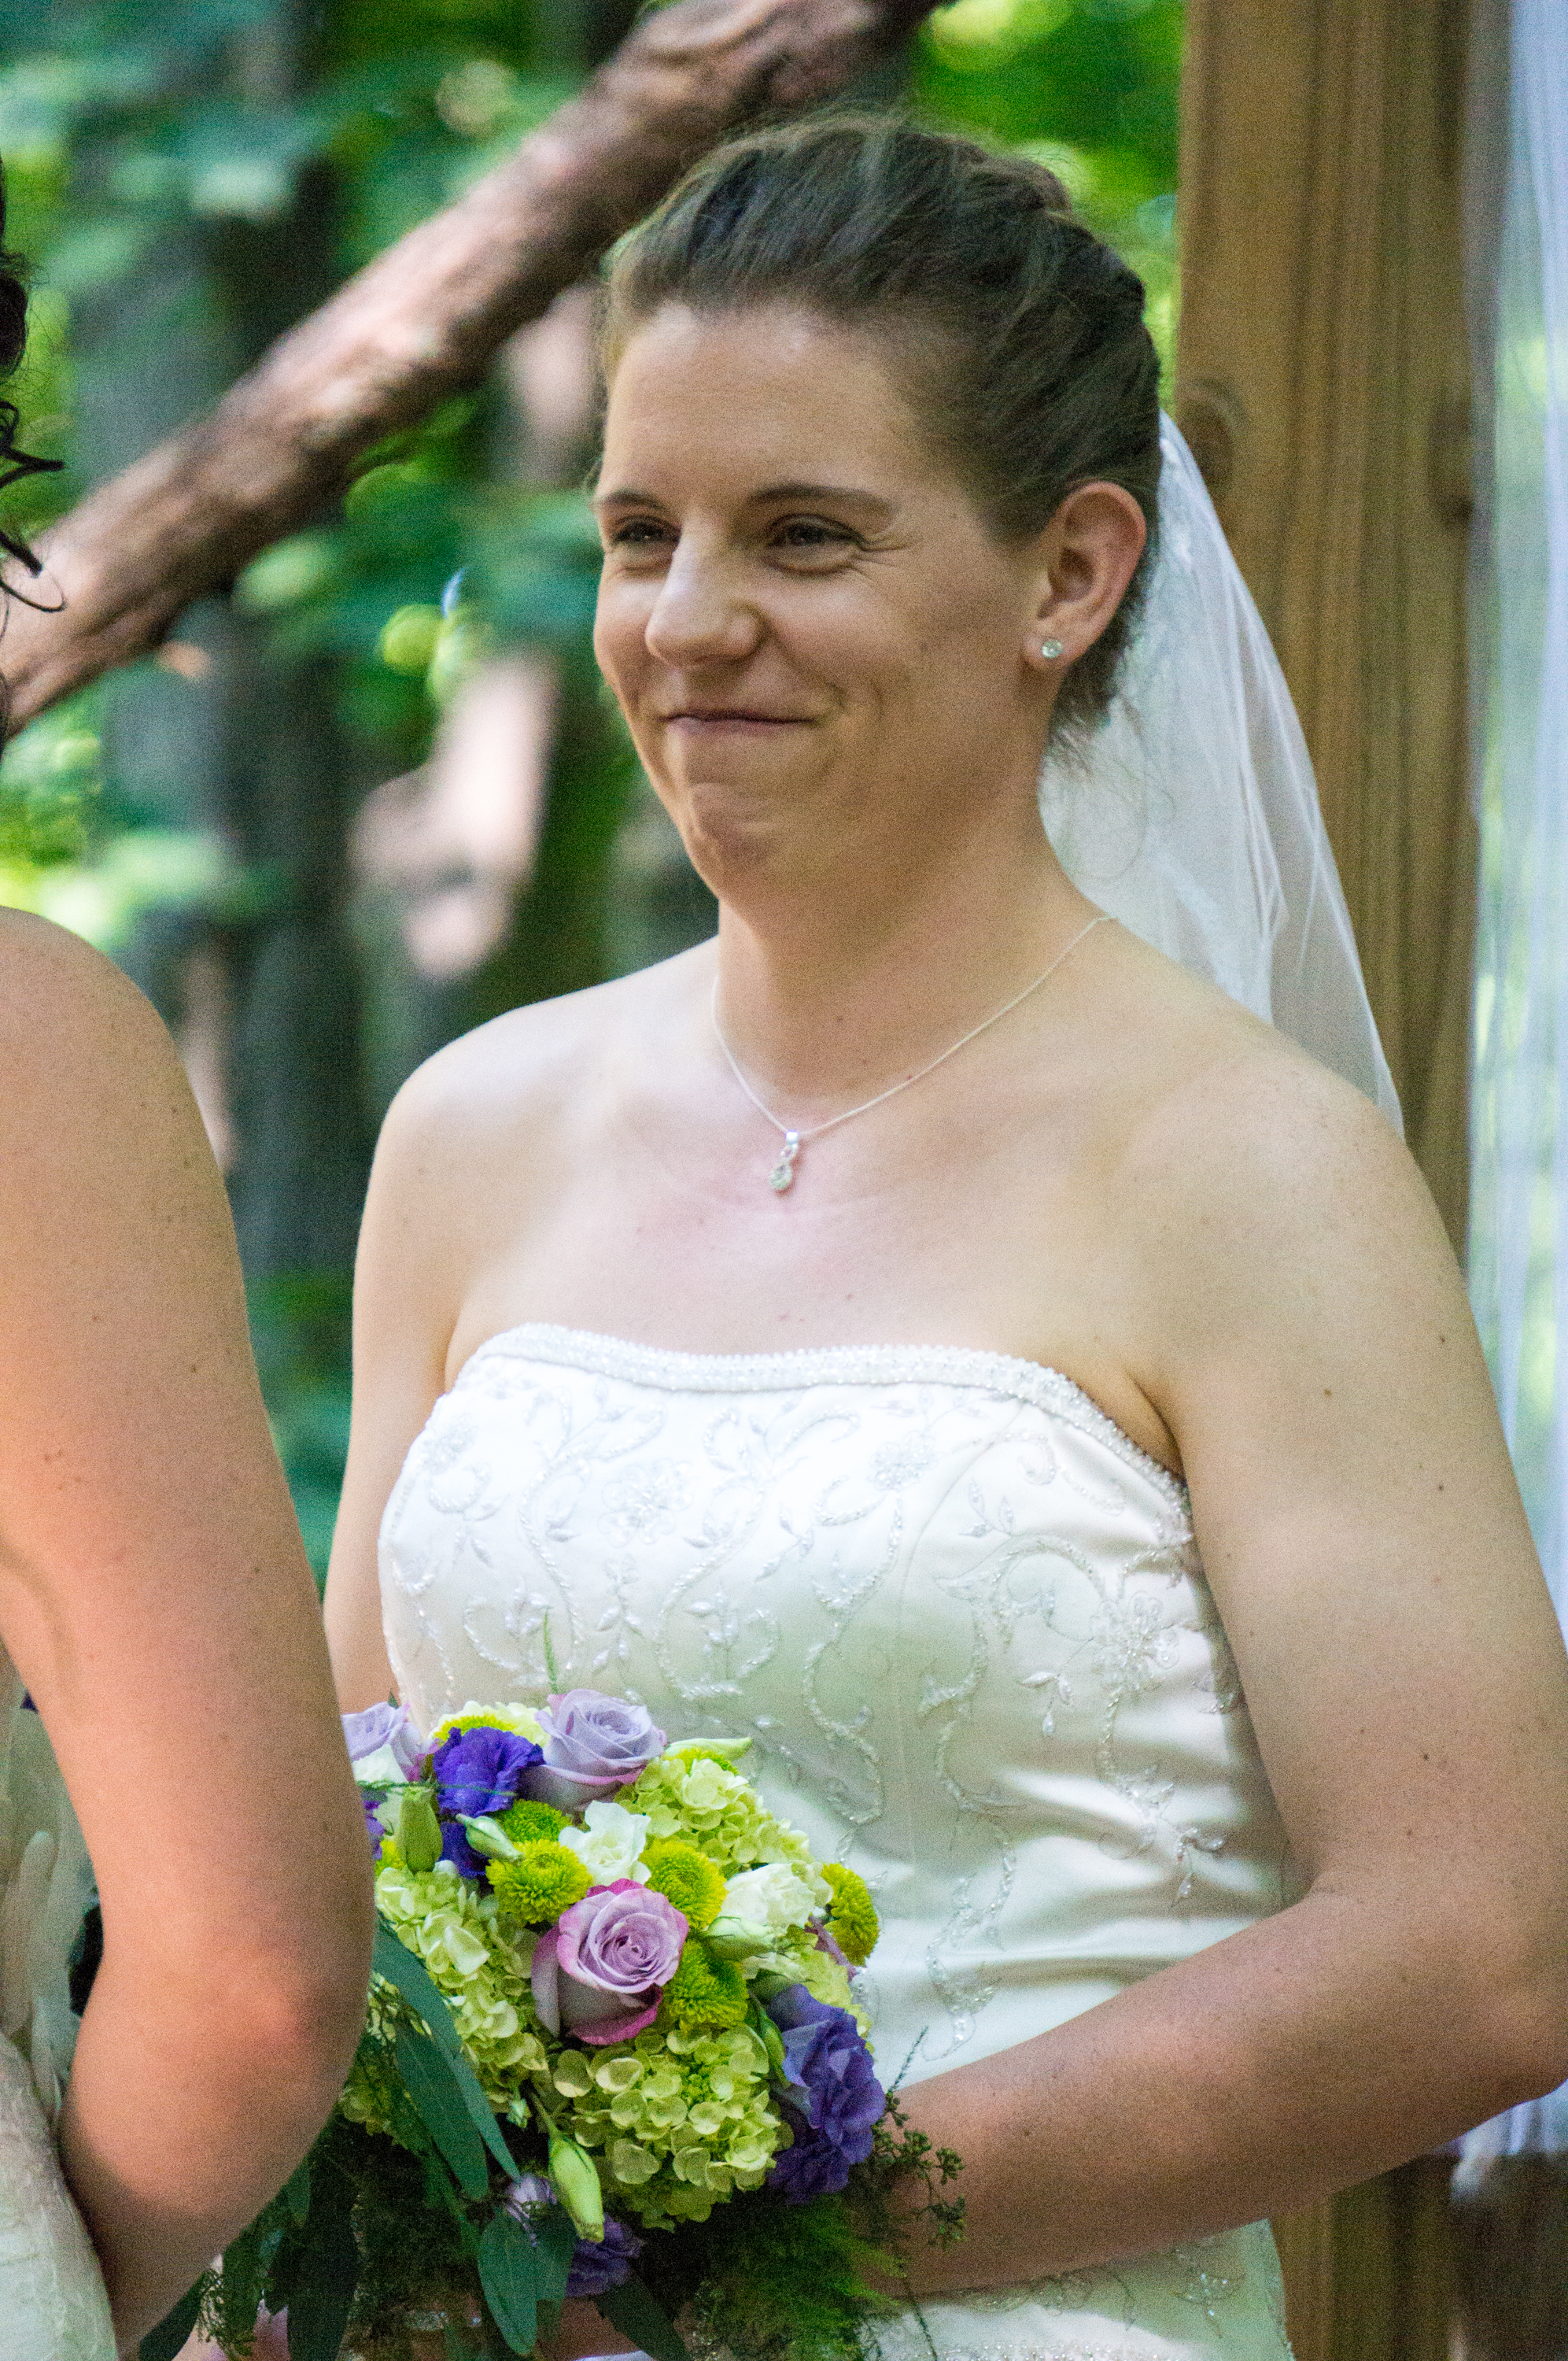 Minnesota LGBT Wedding Photography - Megan and Trista - RKH Images - Ceremony (149 of 302).jpg